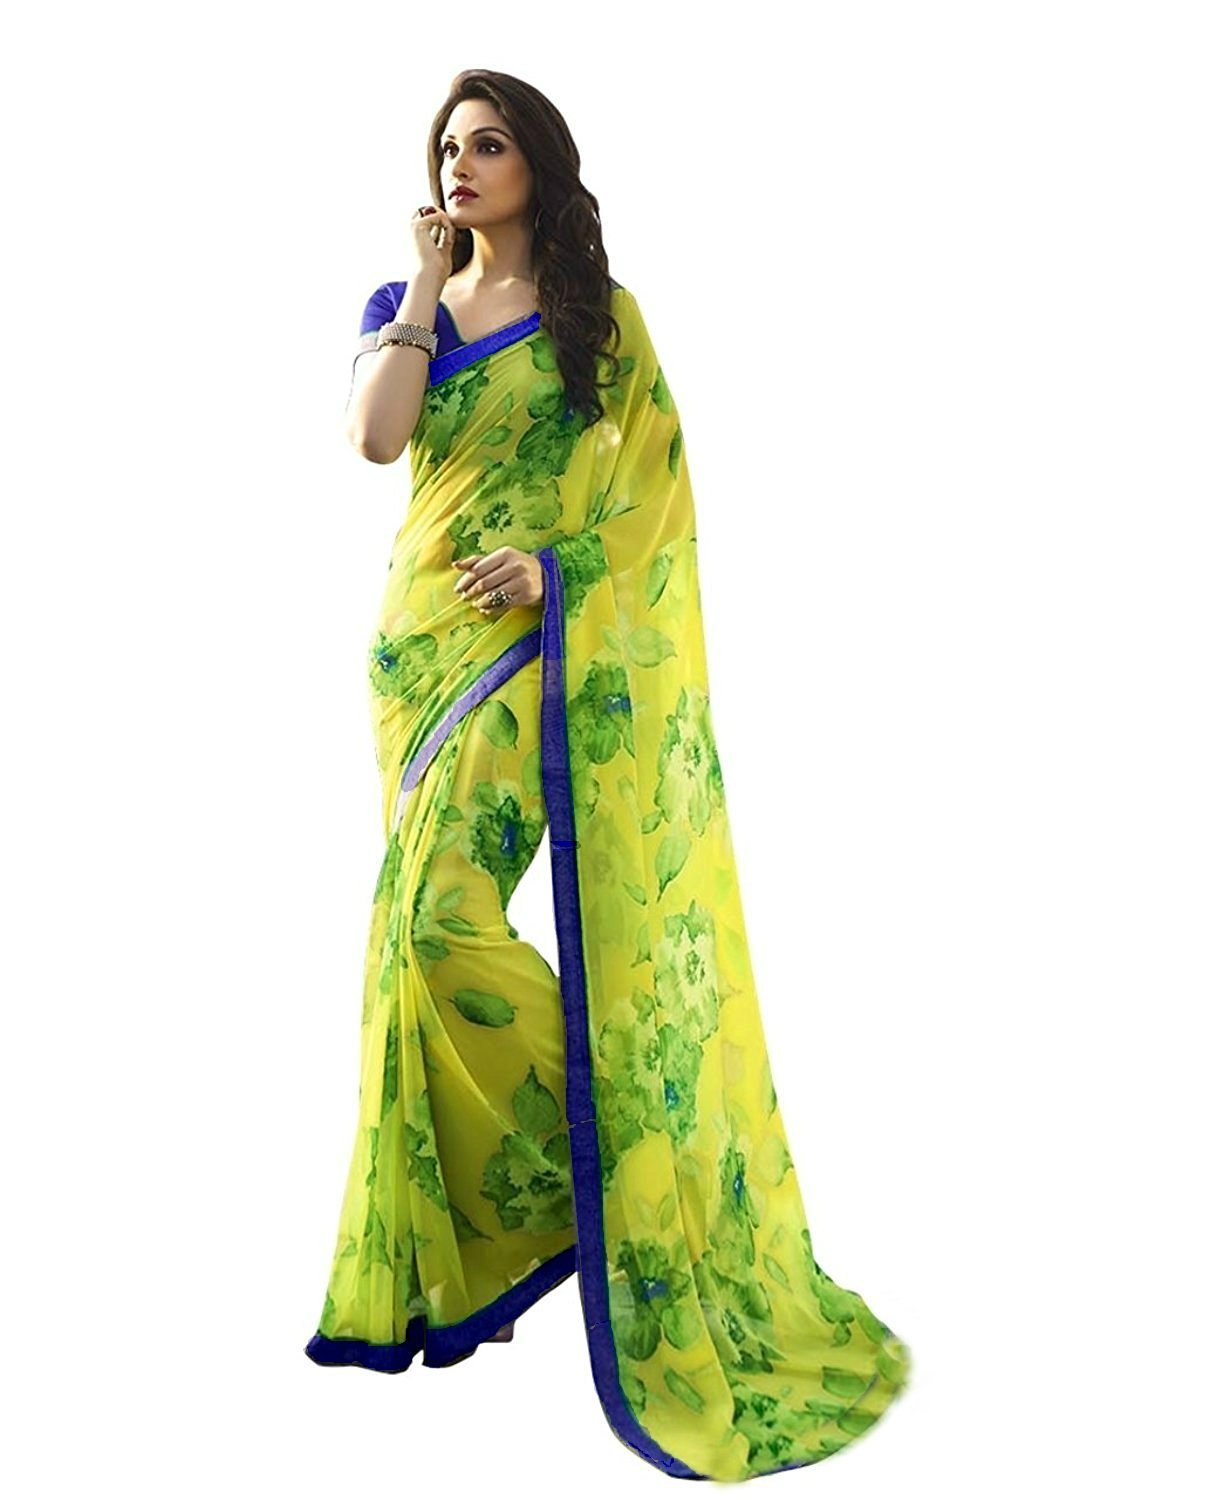 bd8836391 Vedant Vastram Women s Premium Georgette Printed Saree With Blouse Piece  (Green Colour)